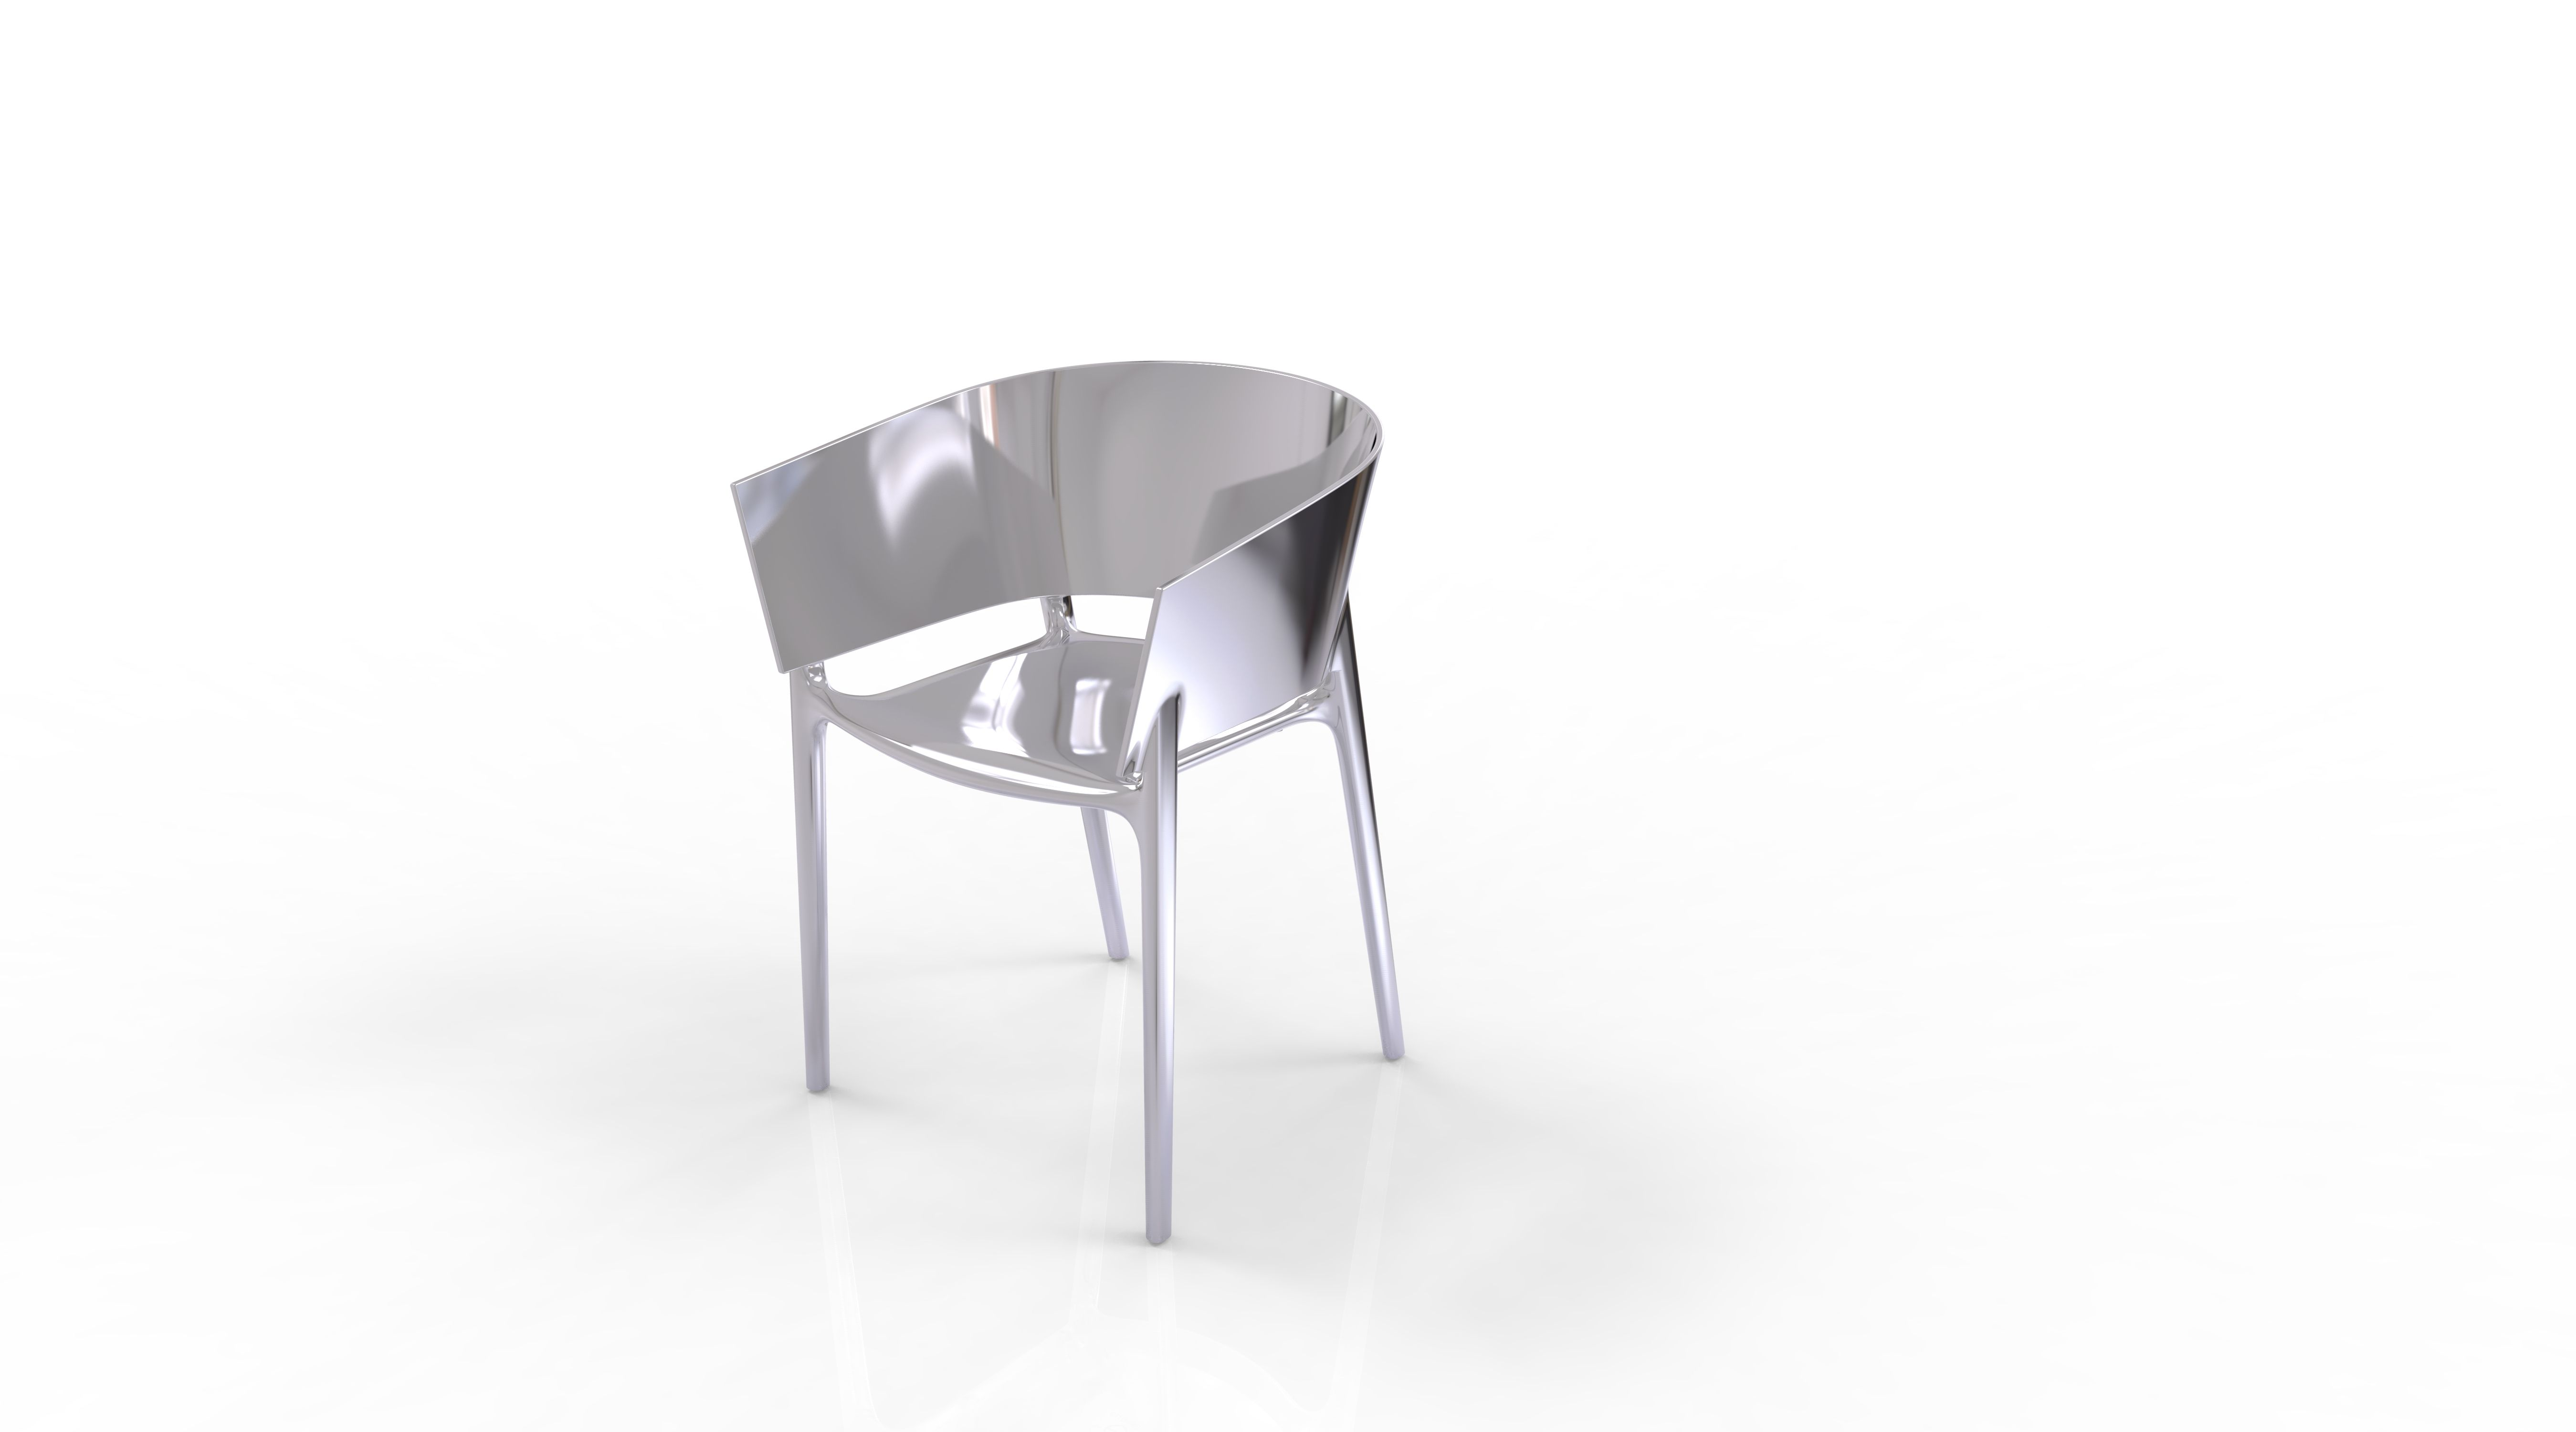 Chair Kilt Steel by Ethimo designed by Marcello Ziliani design outdoor furniture OUTDOOR FURNITURE 2 0